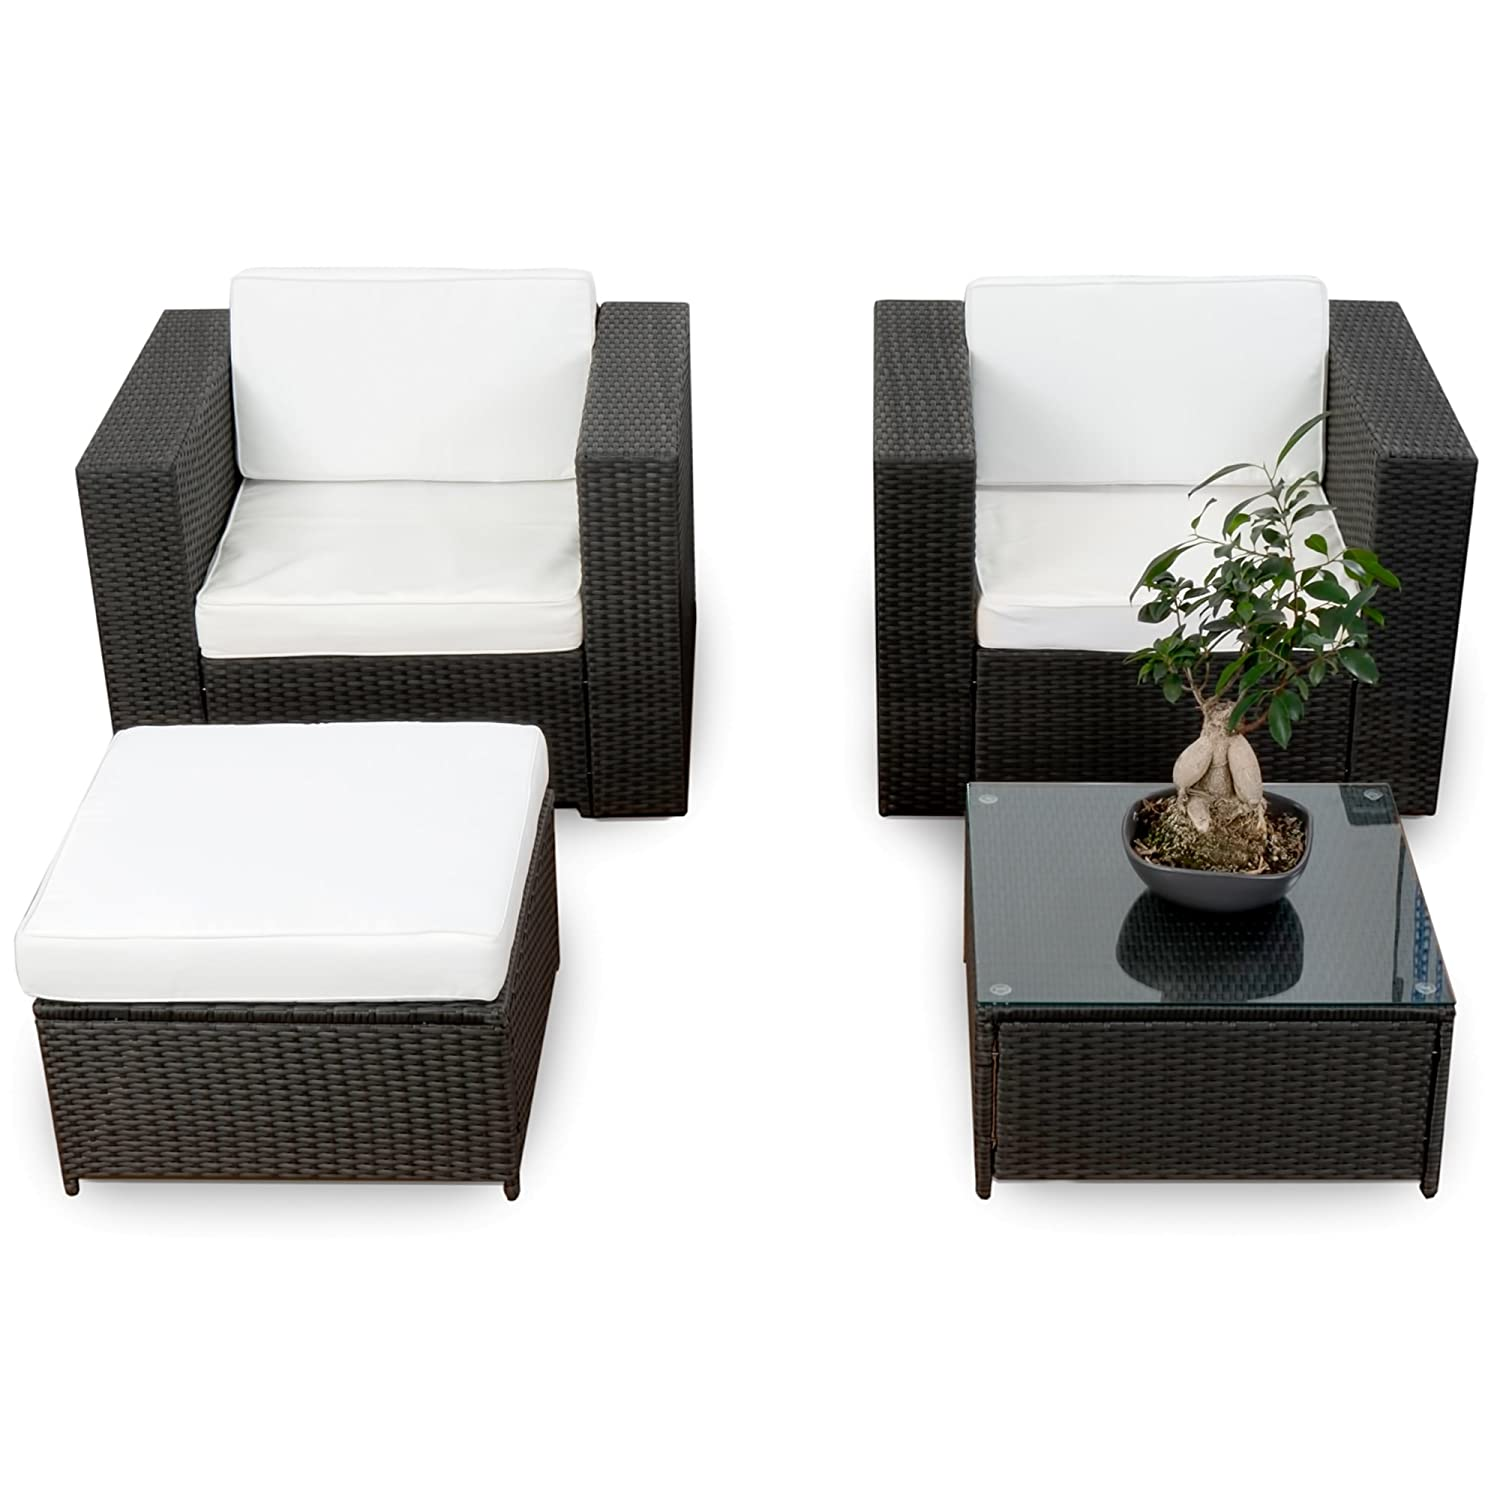 erweiterbares 10tlg balkon garten lounge set polyrattan schwarz sitzgruppe garnitur. Black Bedroom Furniture Sets. Home Design Ideas